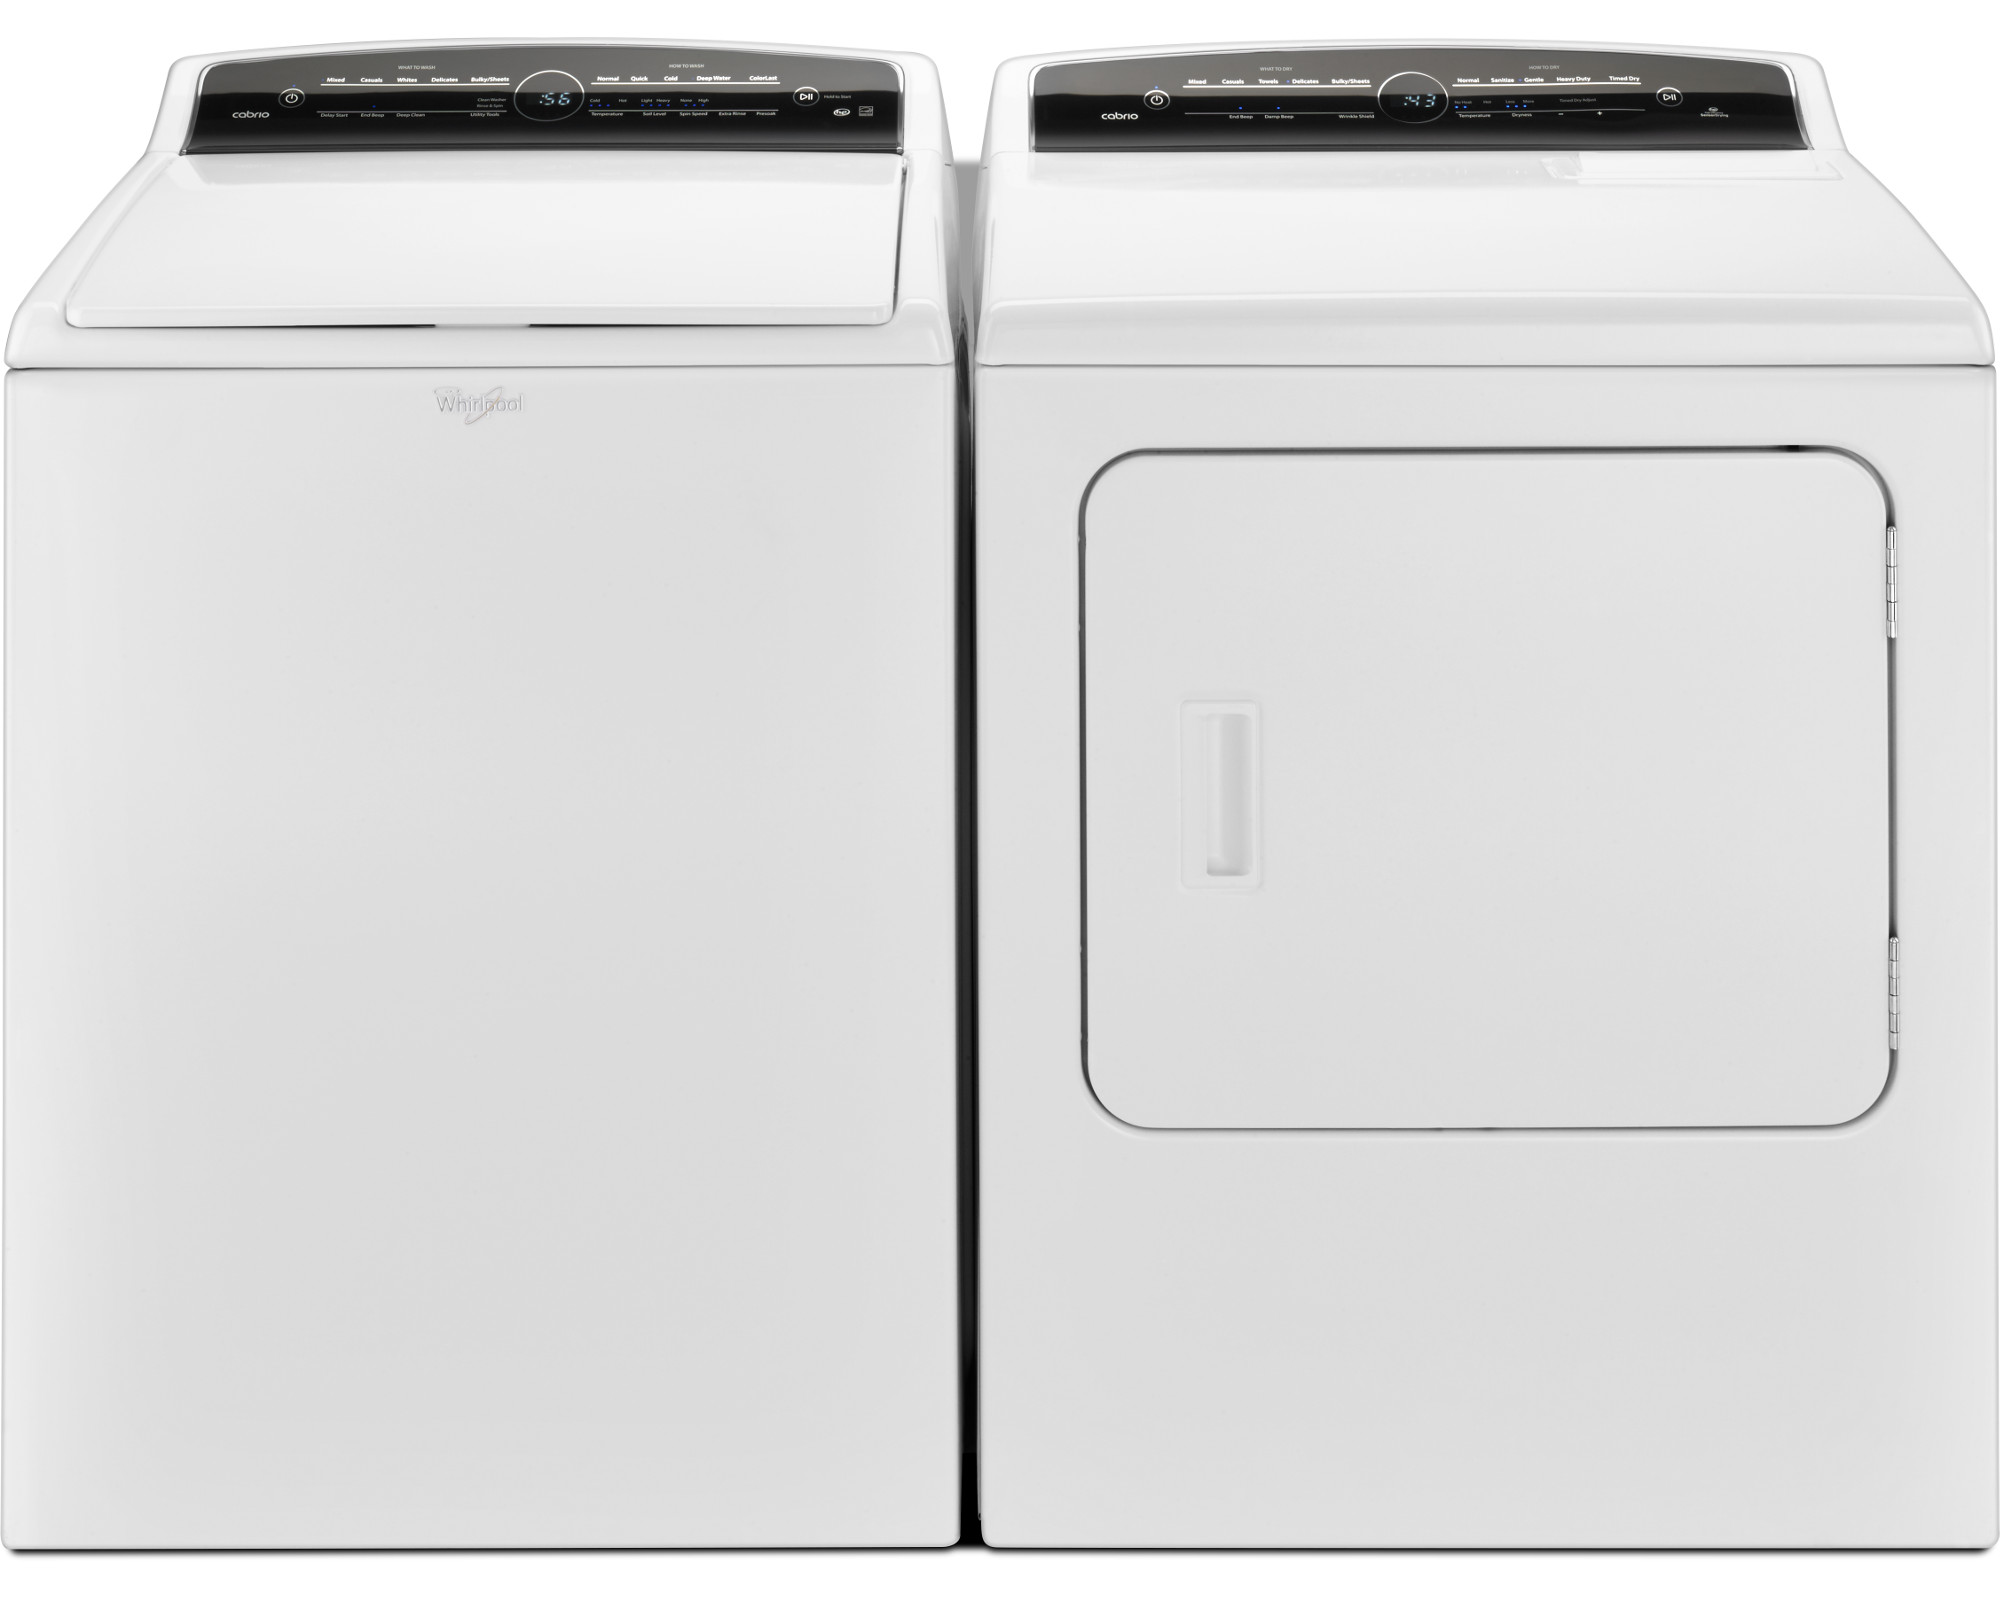 Whirlpool WTW7000DW 4.8 cu. ft. Cabrio® Top Load Washer-White